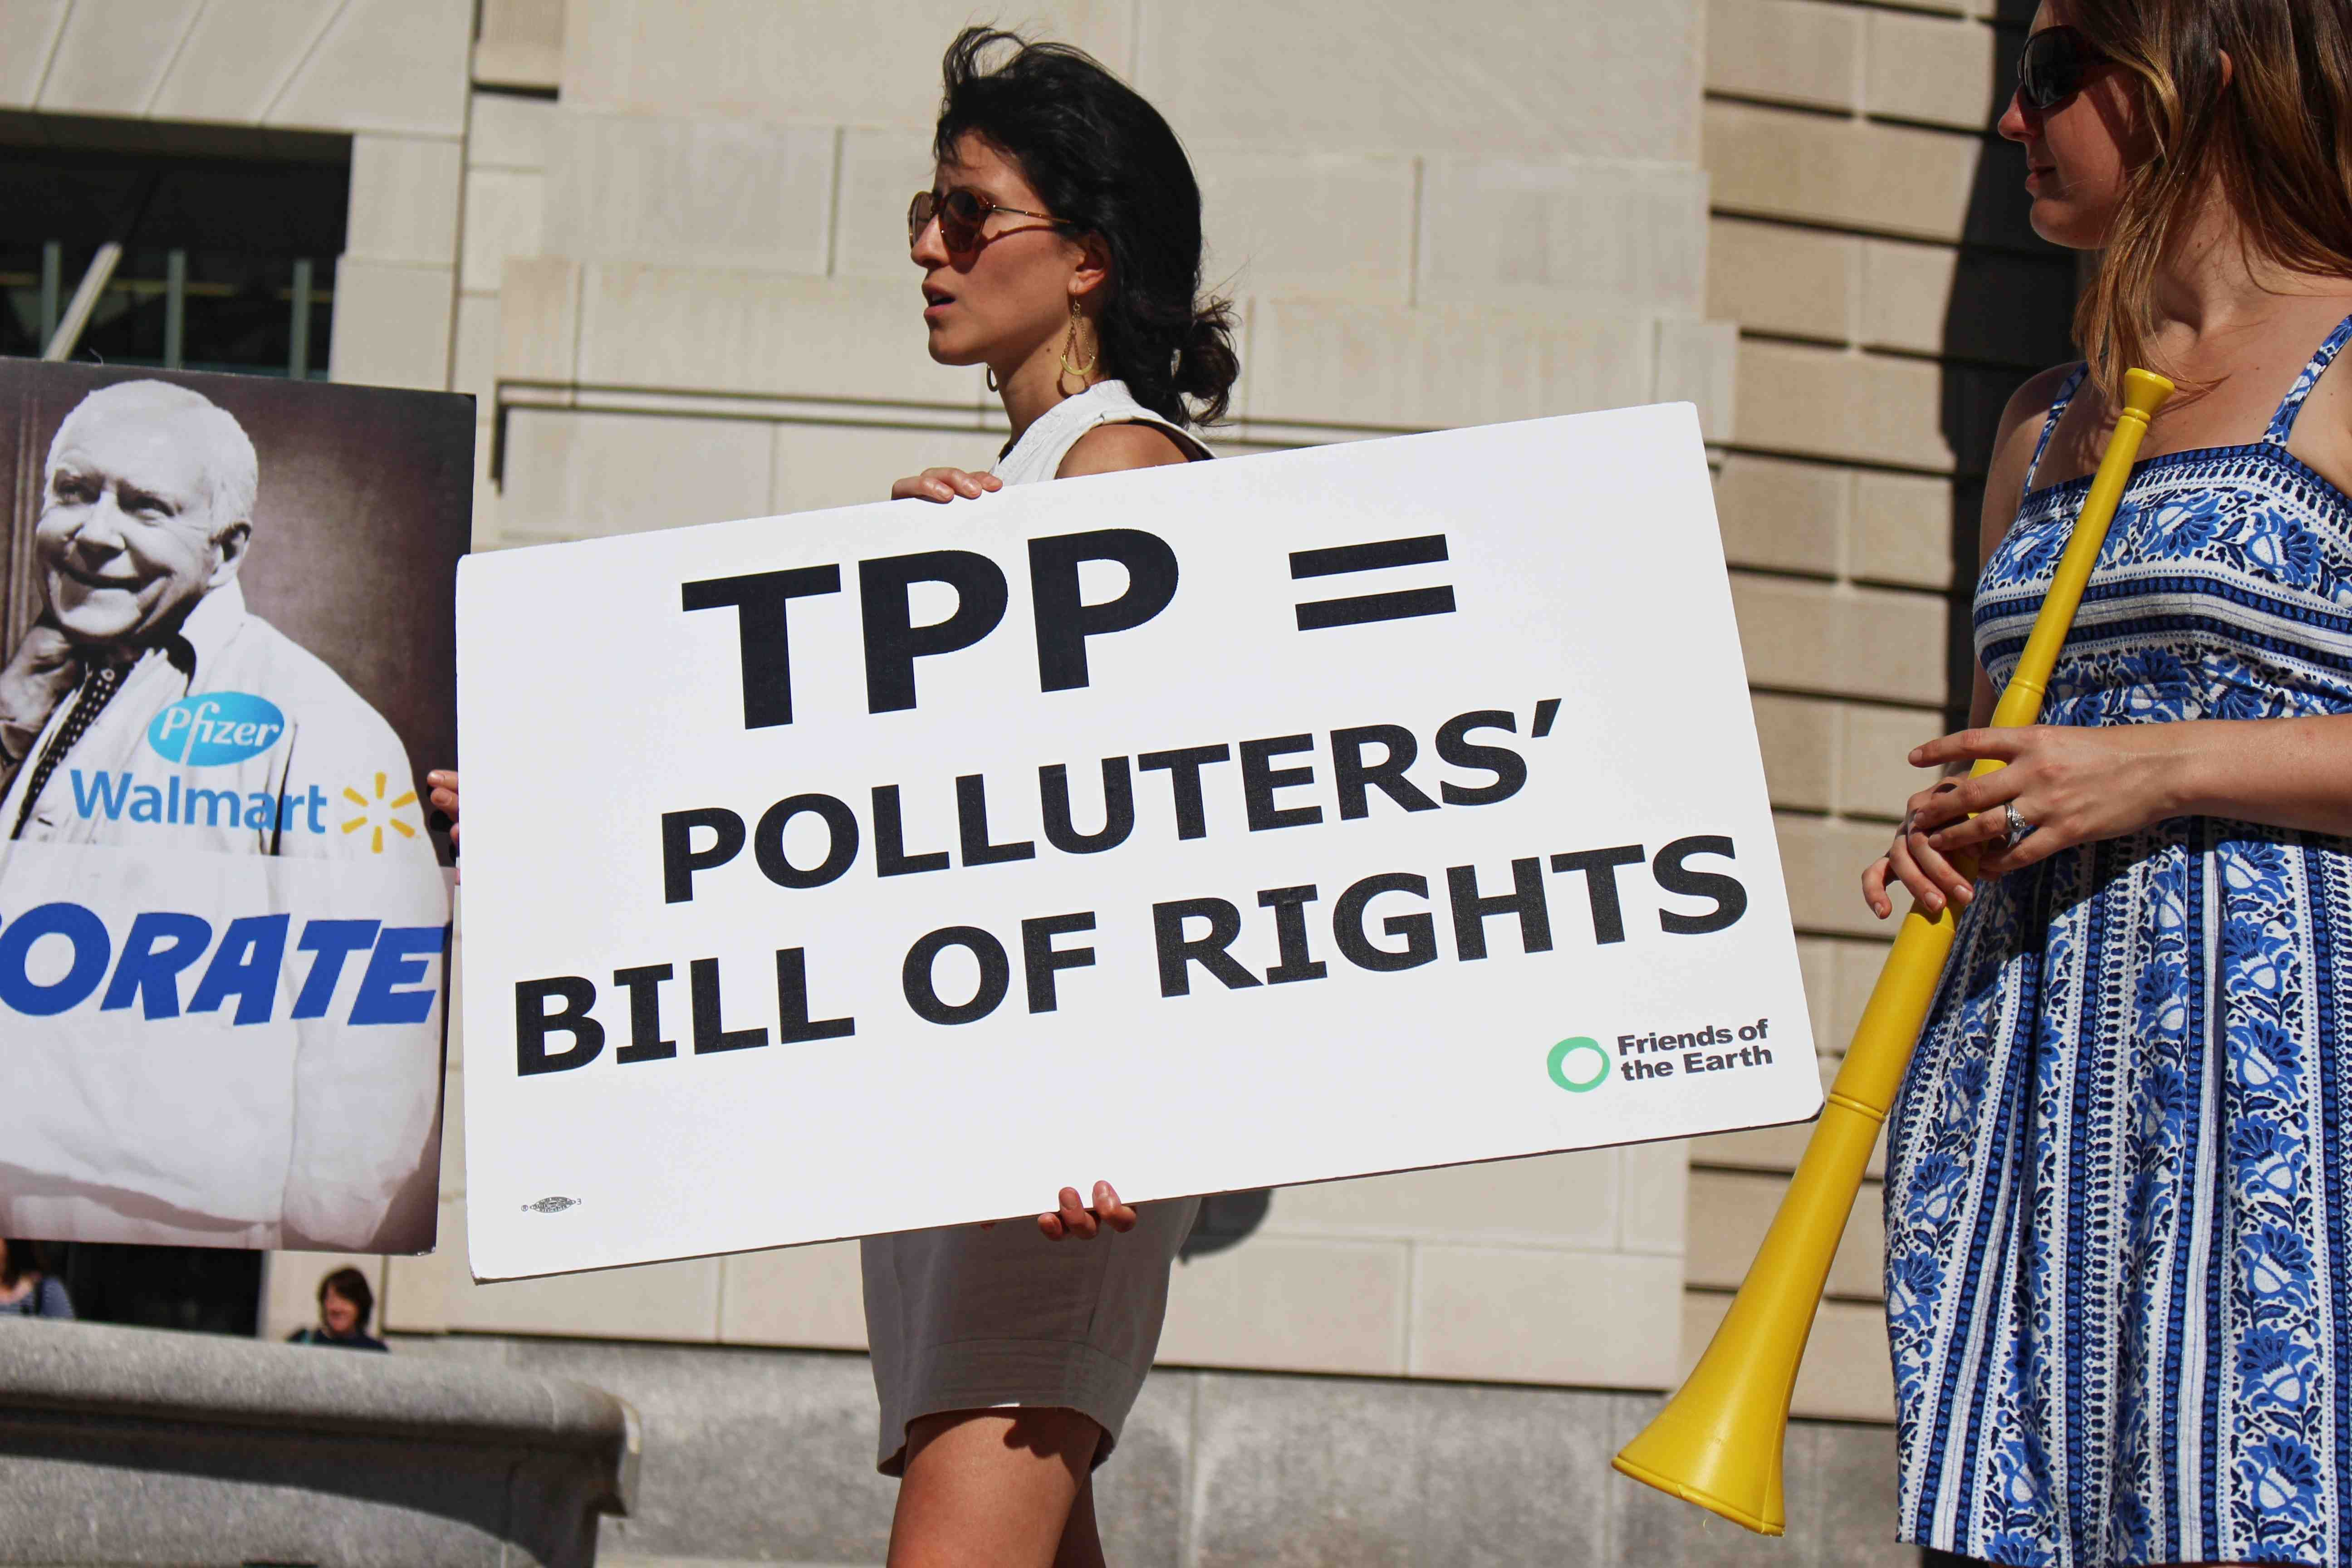 polluters bill of rights